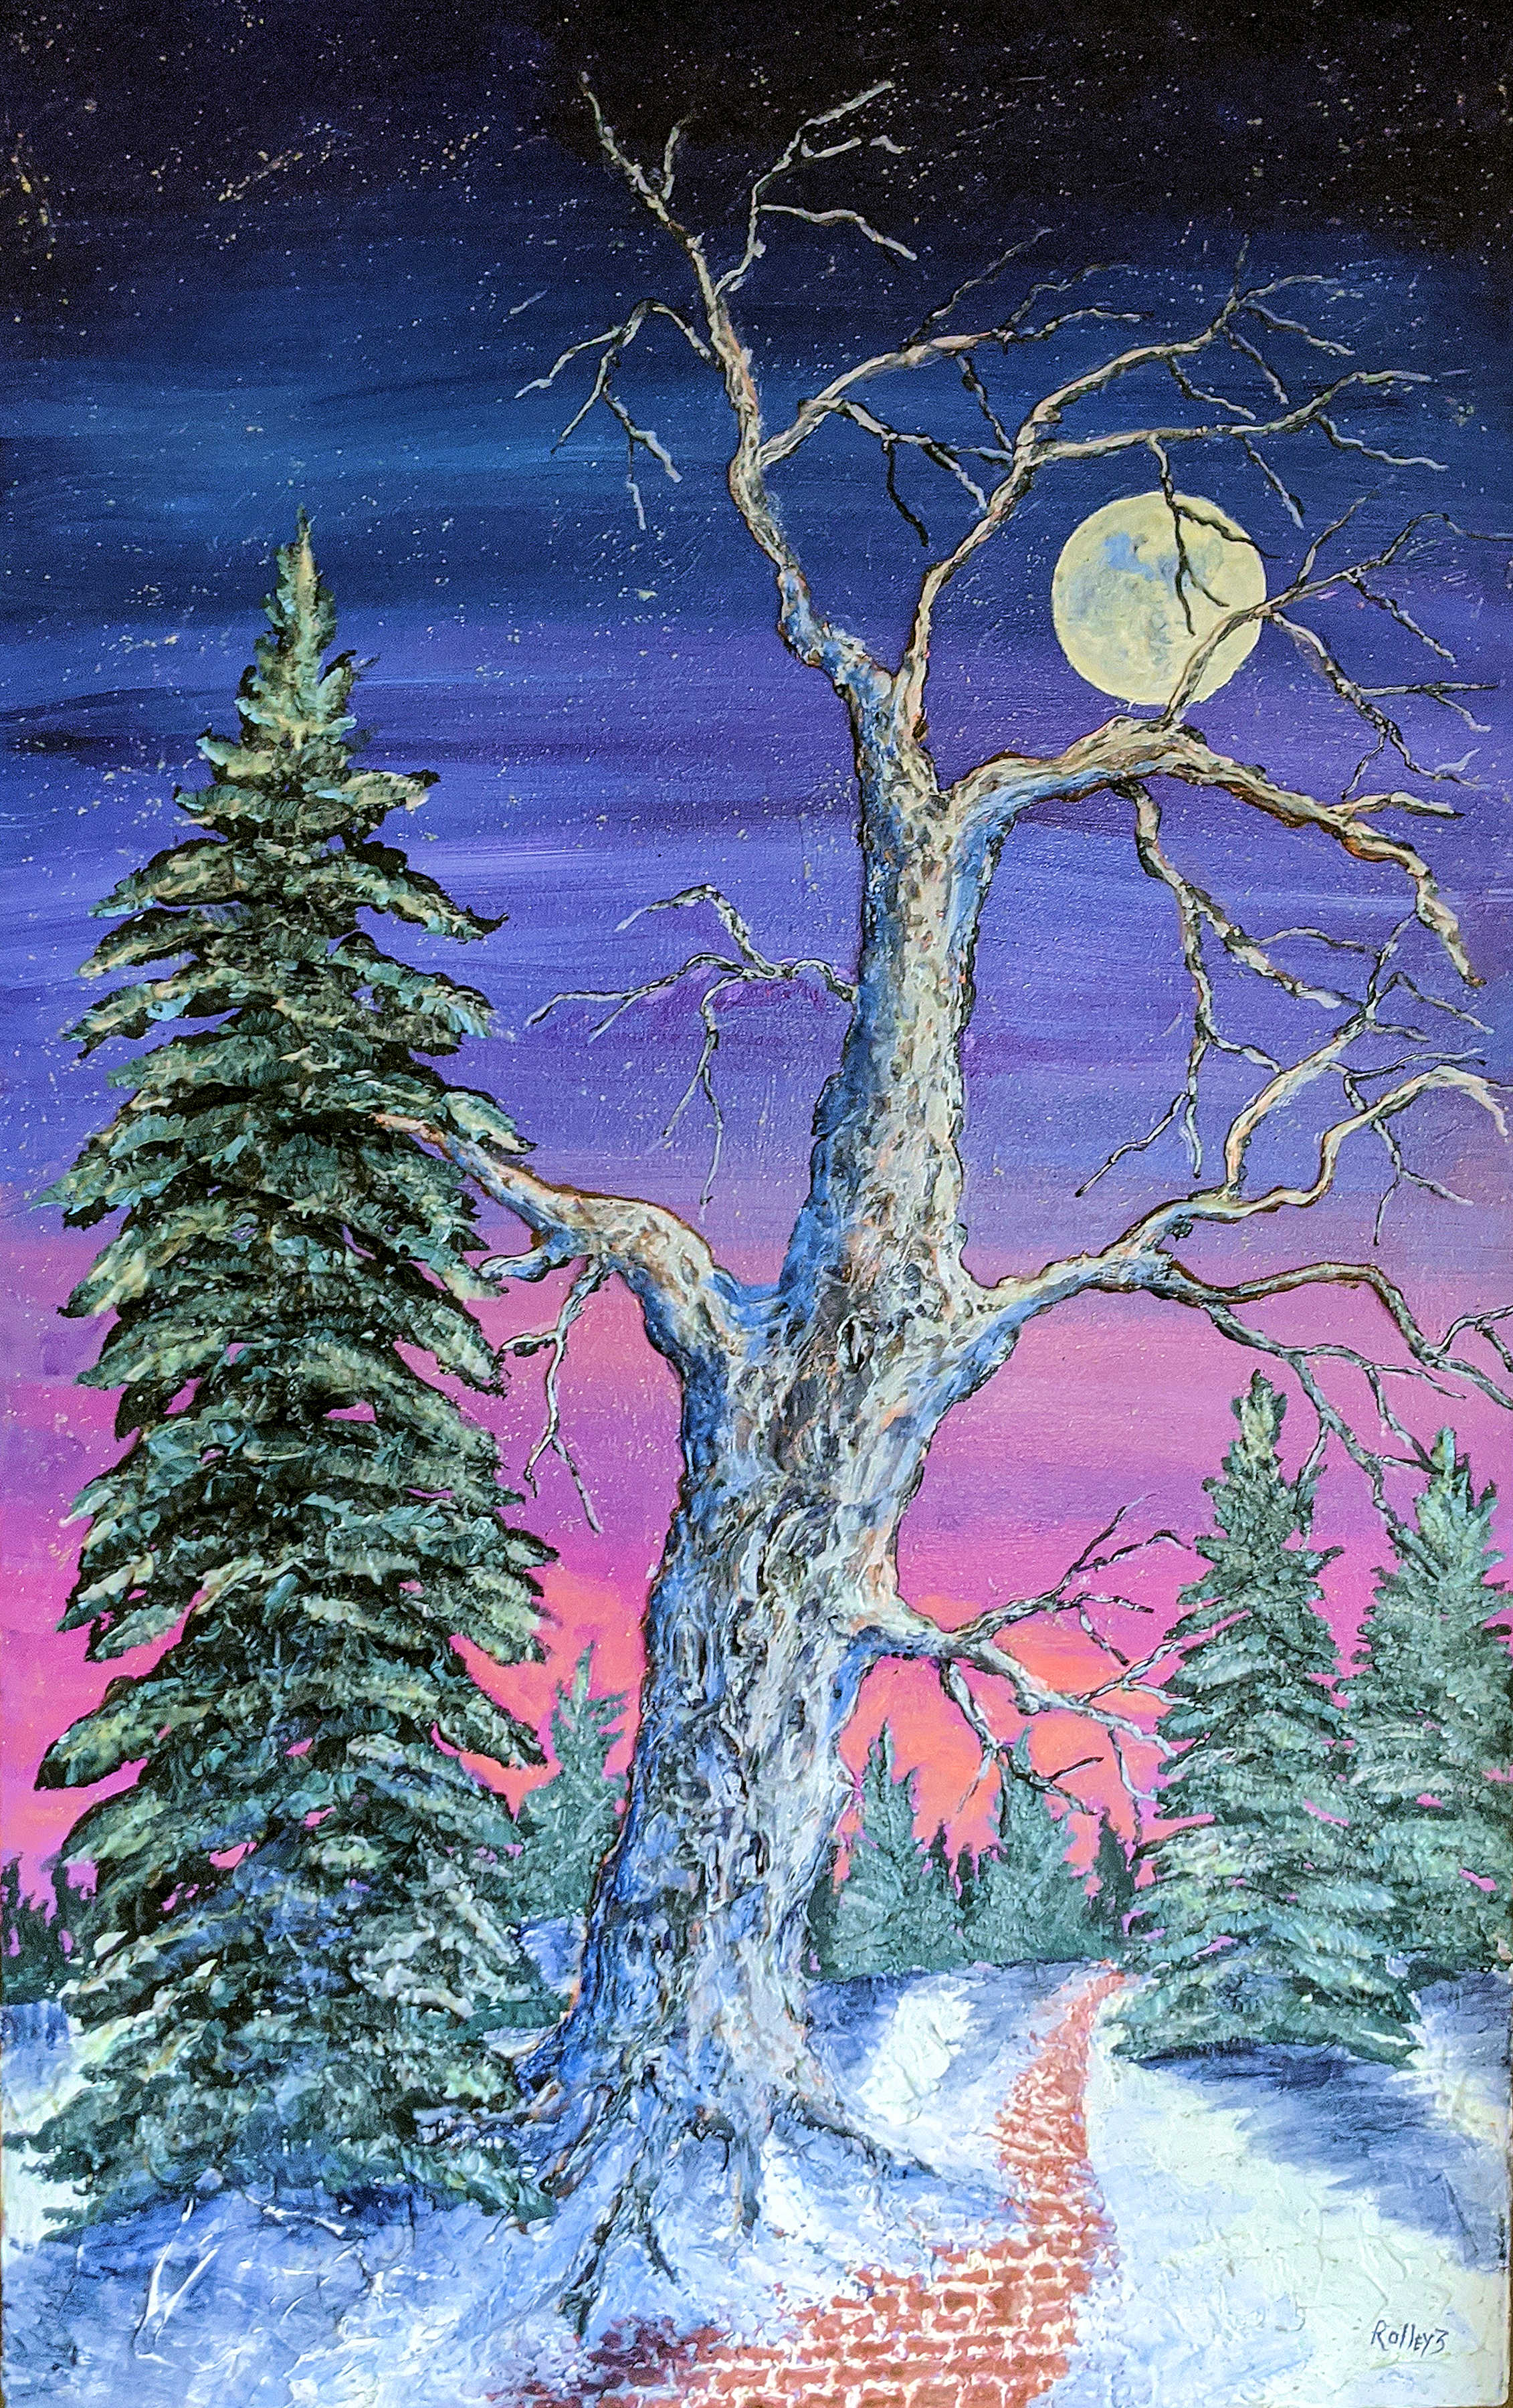 WOODSTOCK WINTER WALK 24X48 inc. $1200.  HIGHLIGHTED WITH GLOW IN DARK LUMINESCENT PAINT